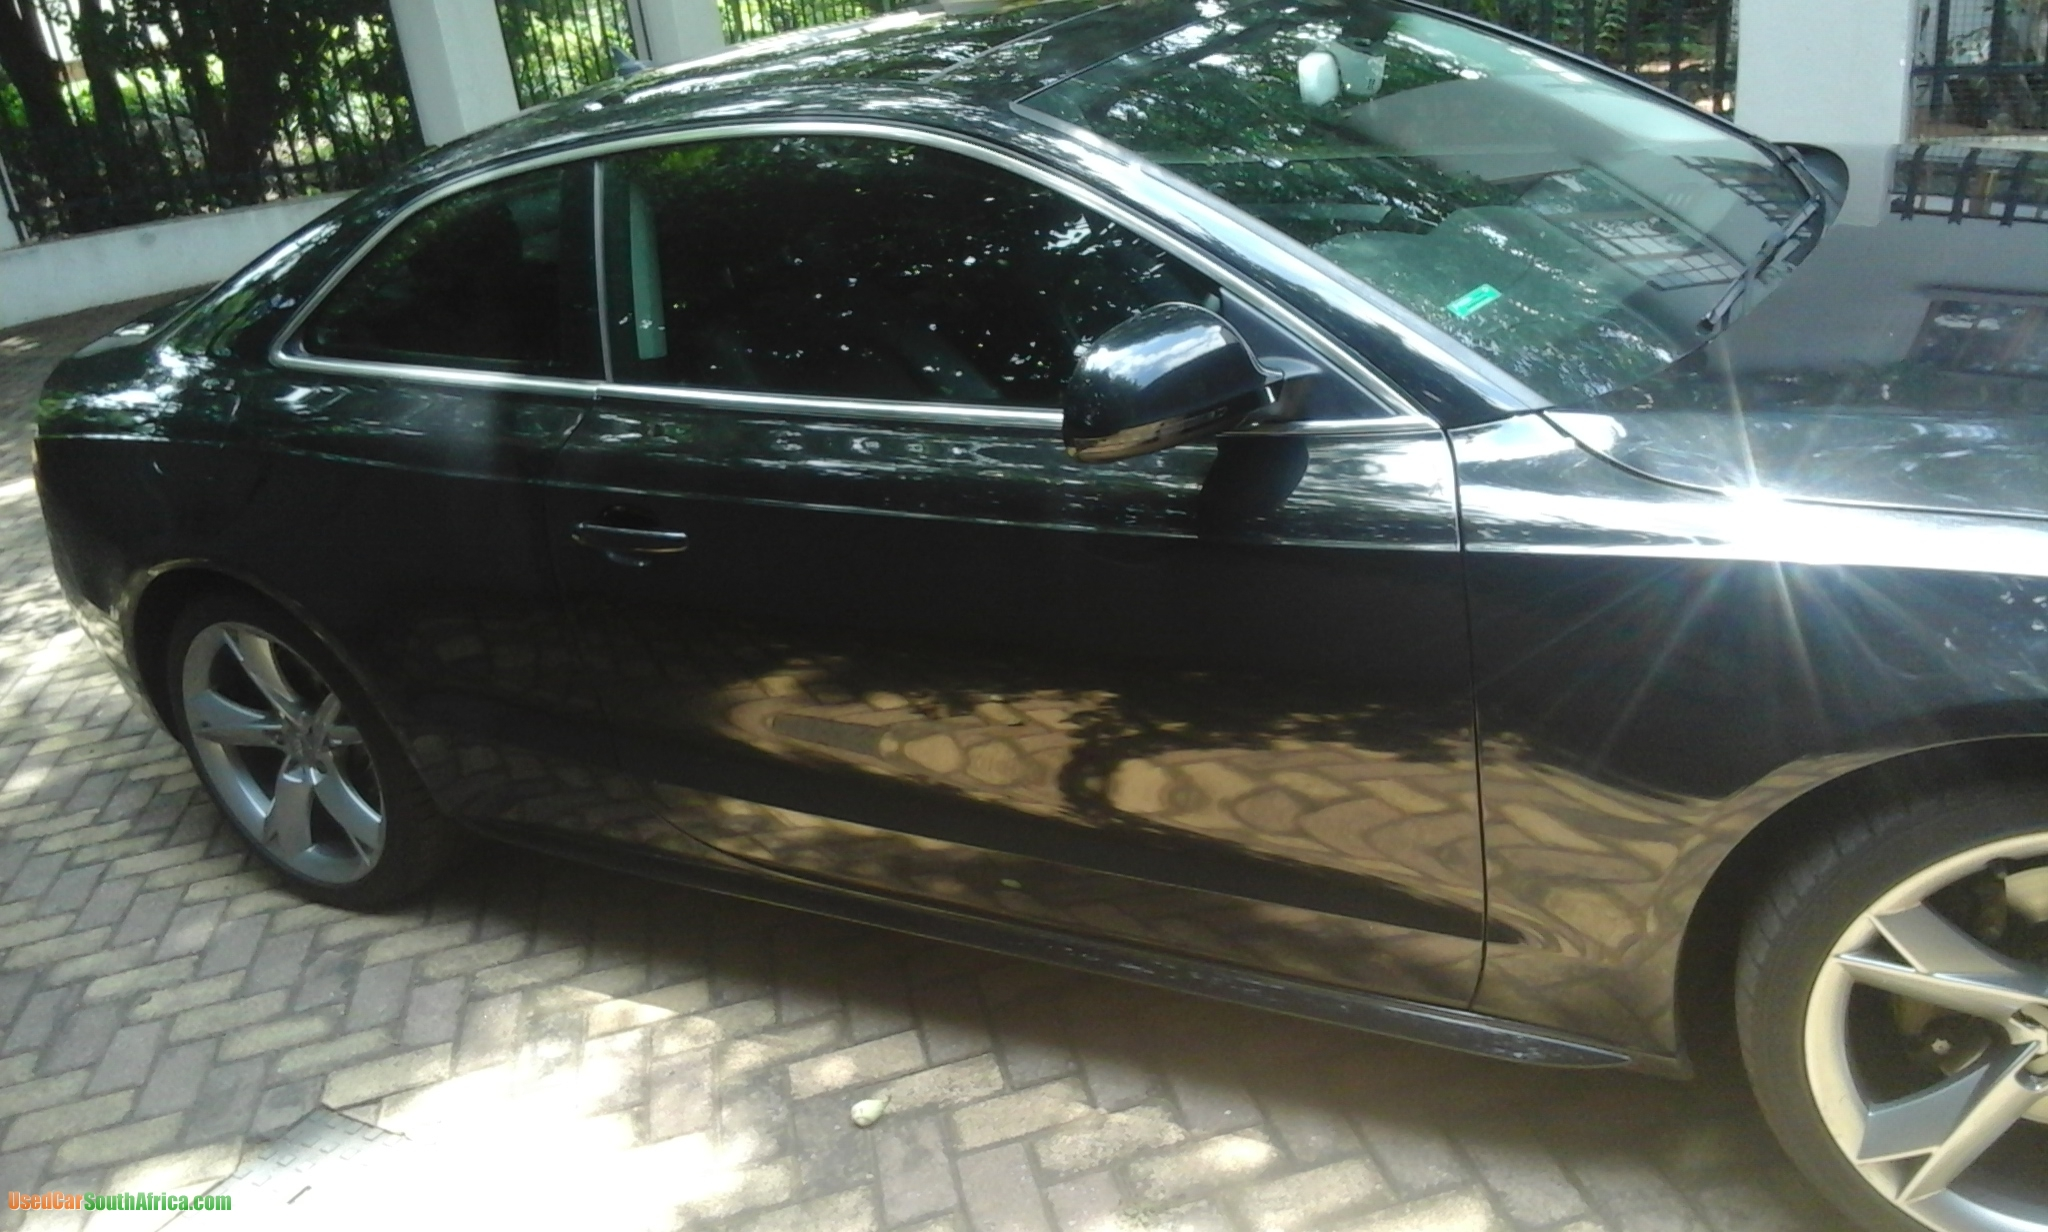 2012 audi a5 used car for sale in pretoria central gauteng south africa usedcarsouthafrica 0